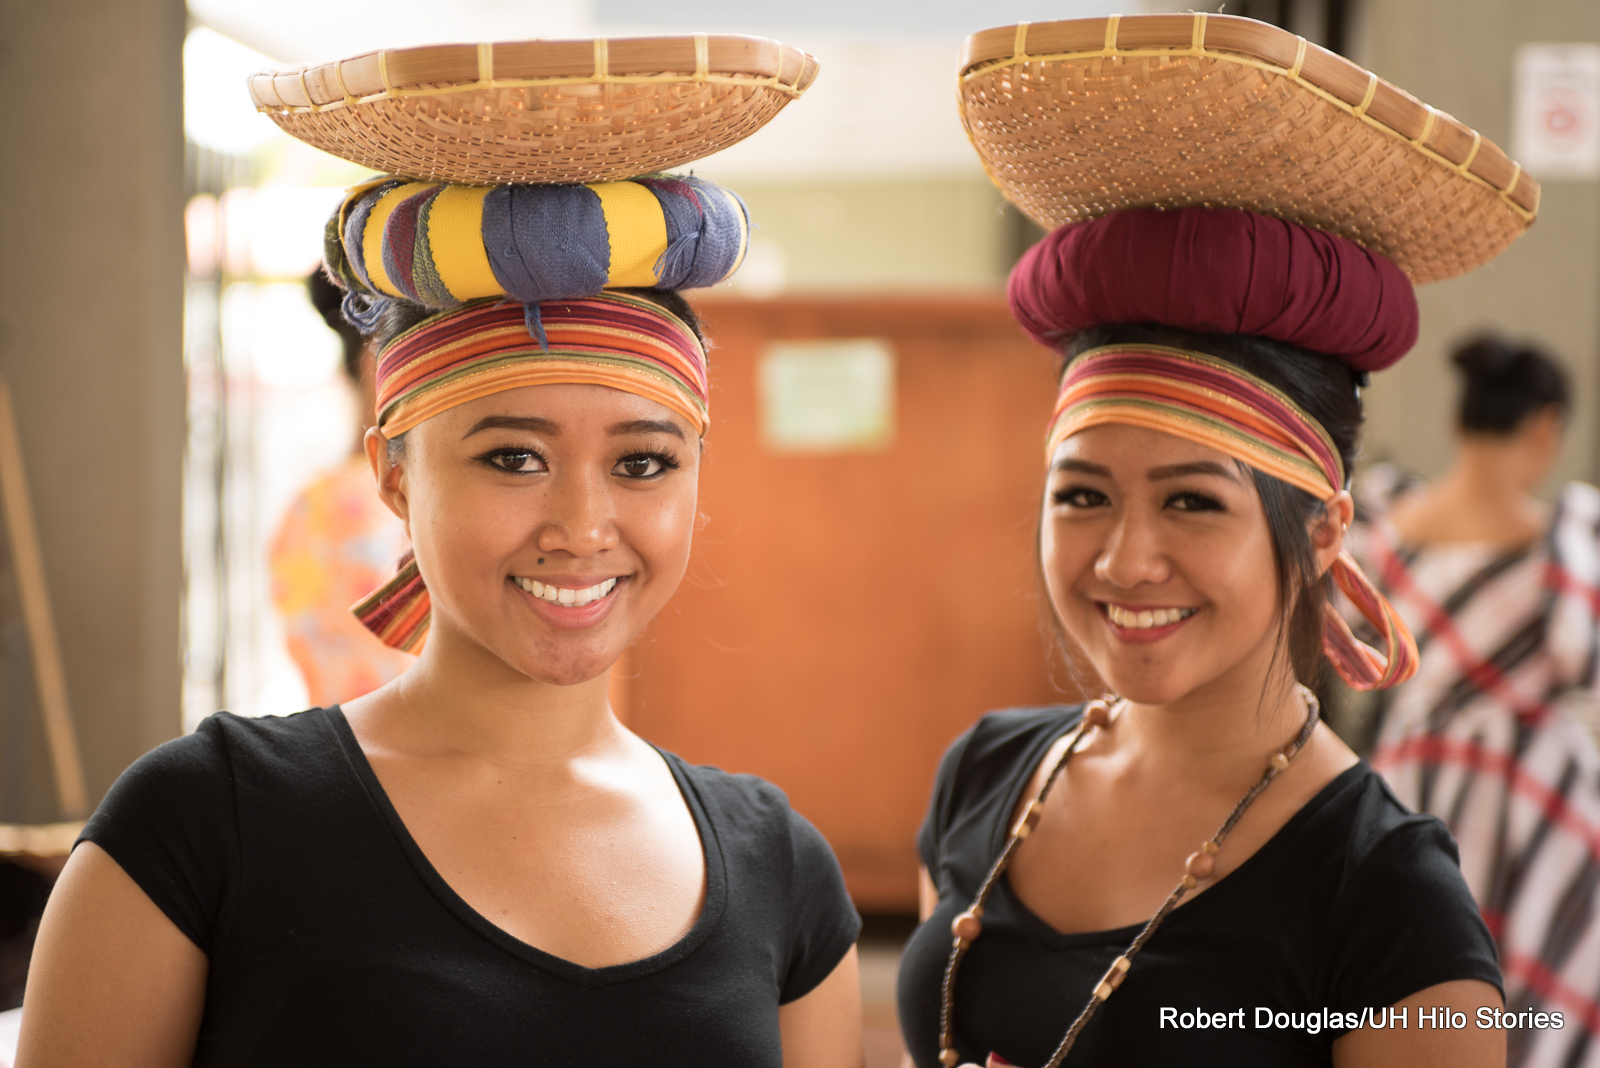 PHOTO ESSAY: UH Hilo's 2015 Barrio Fiesta celebrates Filipino culture with song and dance